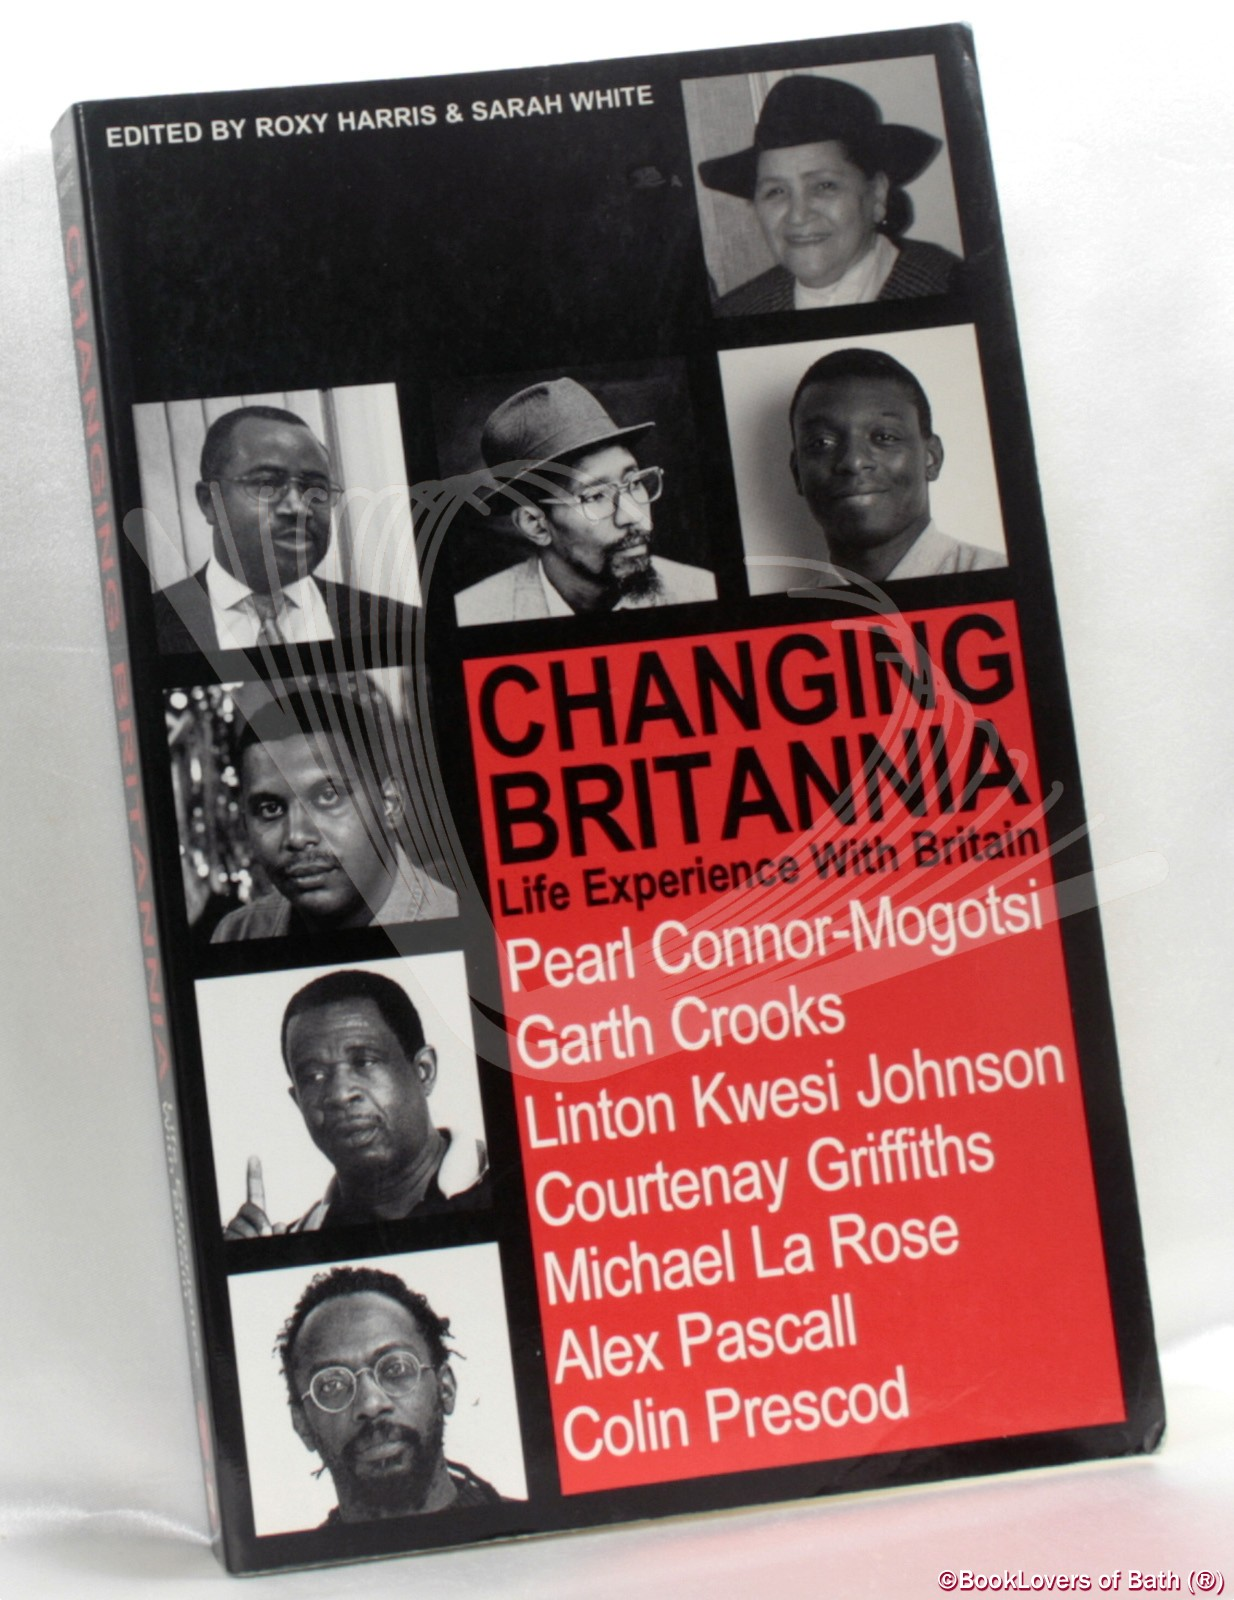 Changing Britannia: Life Experience with Britain - Edited by Roxy Harris & Sarah White